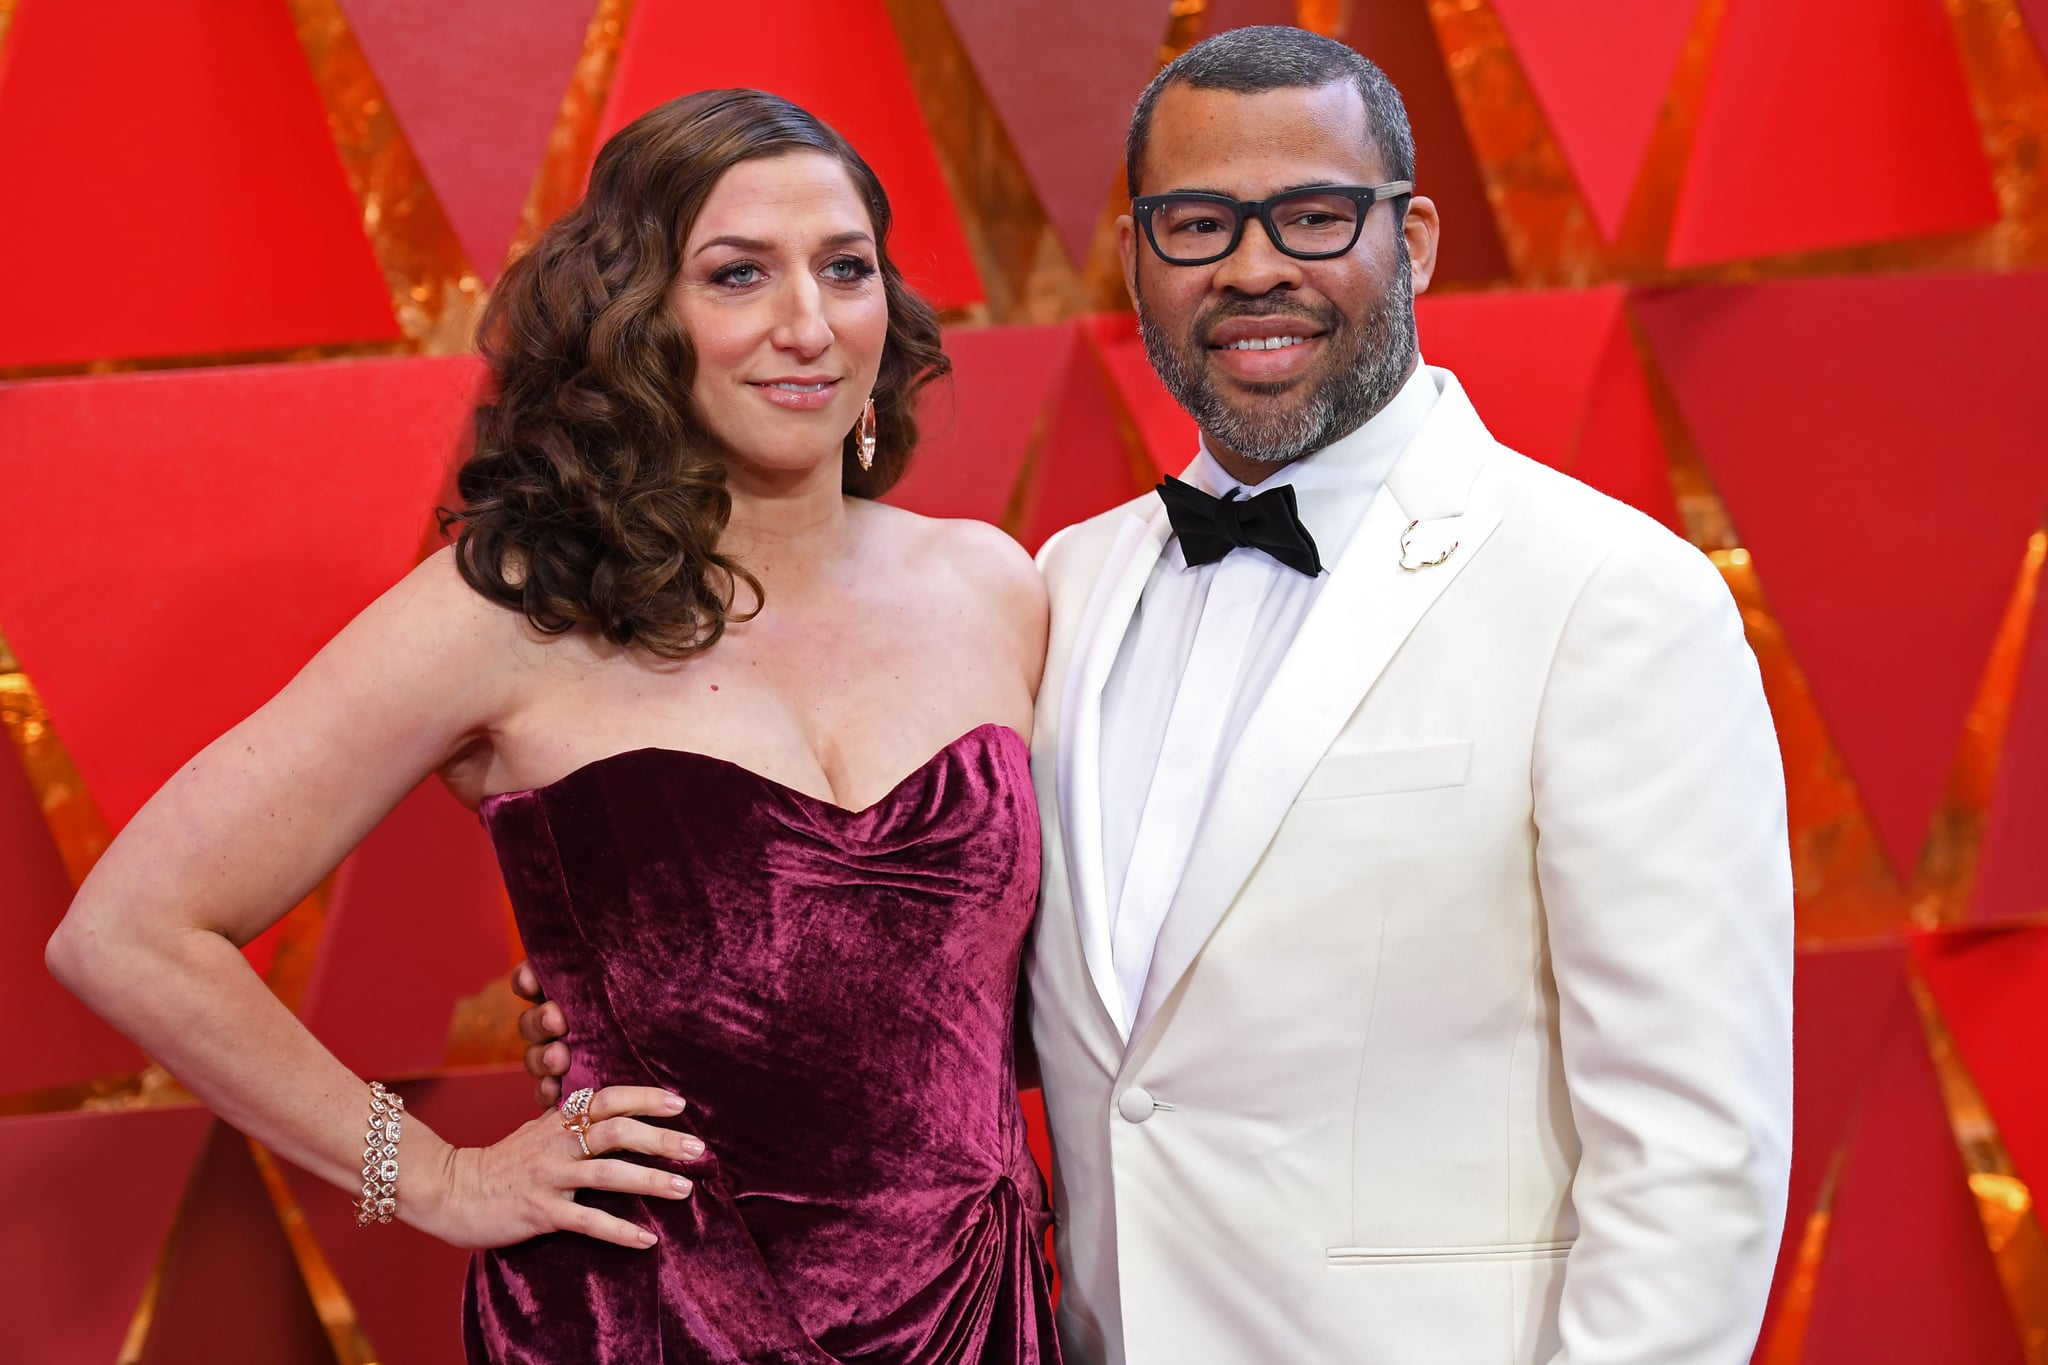 Oscars 2018: Jordan Peele bags Best Original Screenplay for 'Get Out'